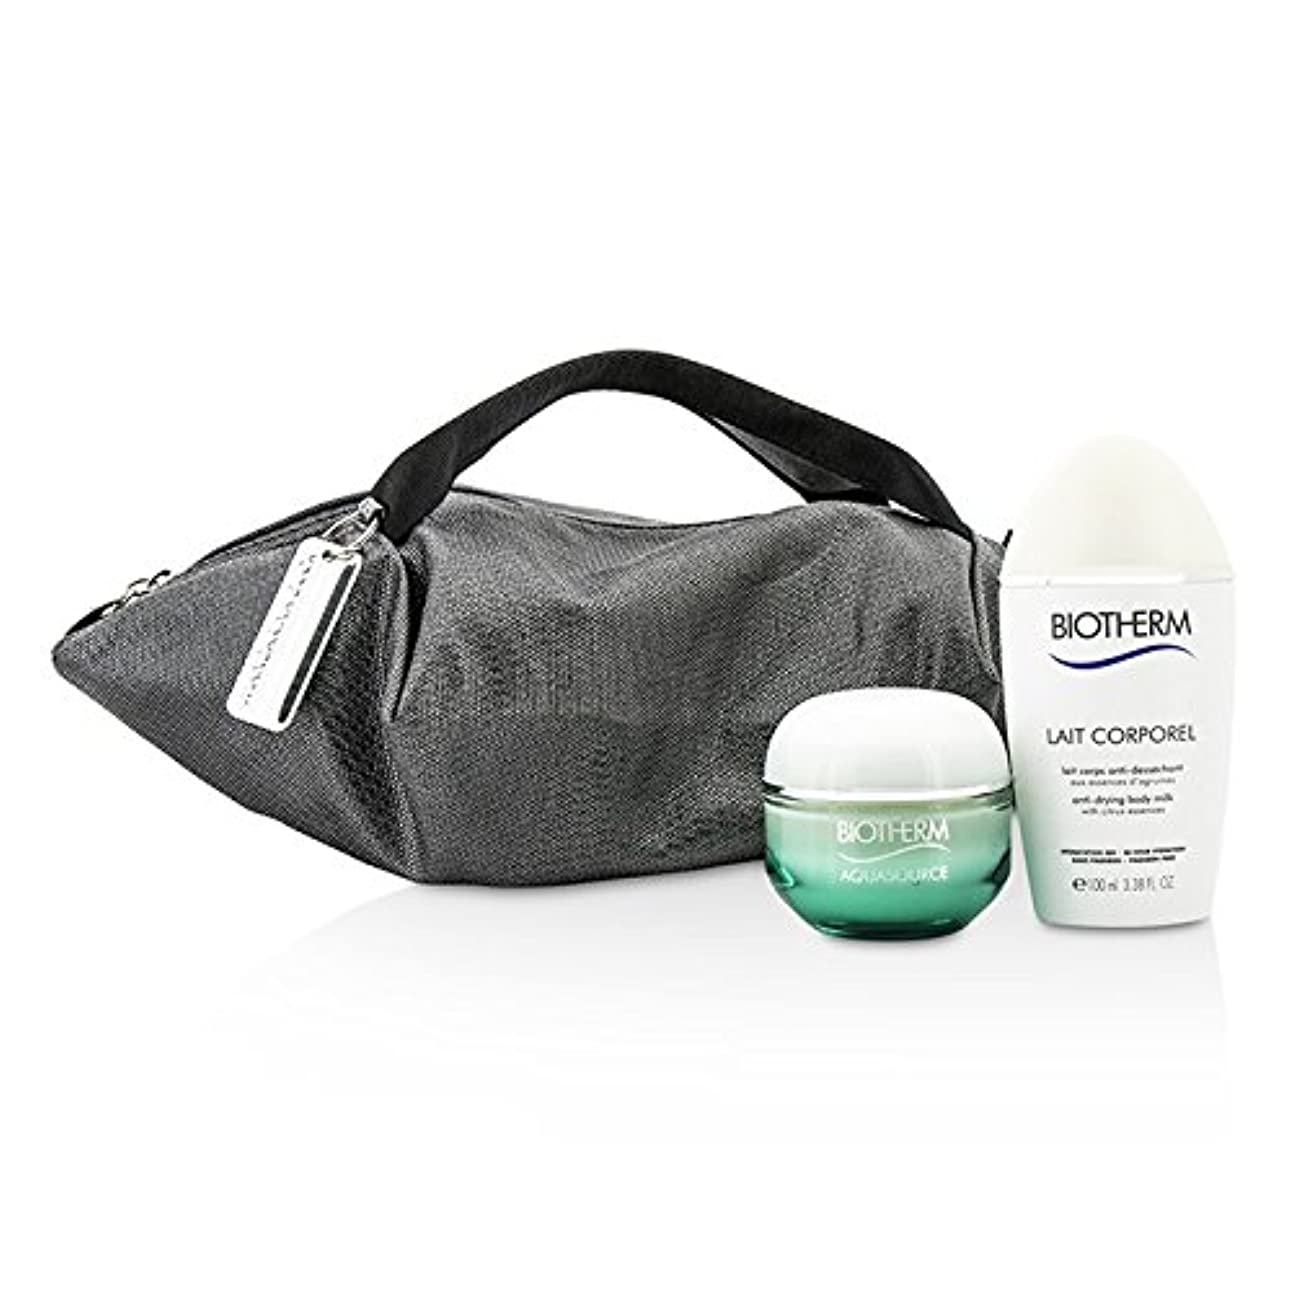 オズワルド小石資金ビオテルム Aquasource & Body Care X Mandarina Duck Coffret: Cream N/C 50ml + Anti-Drying Body Care 100ml + Handle Bag...